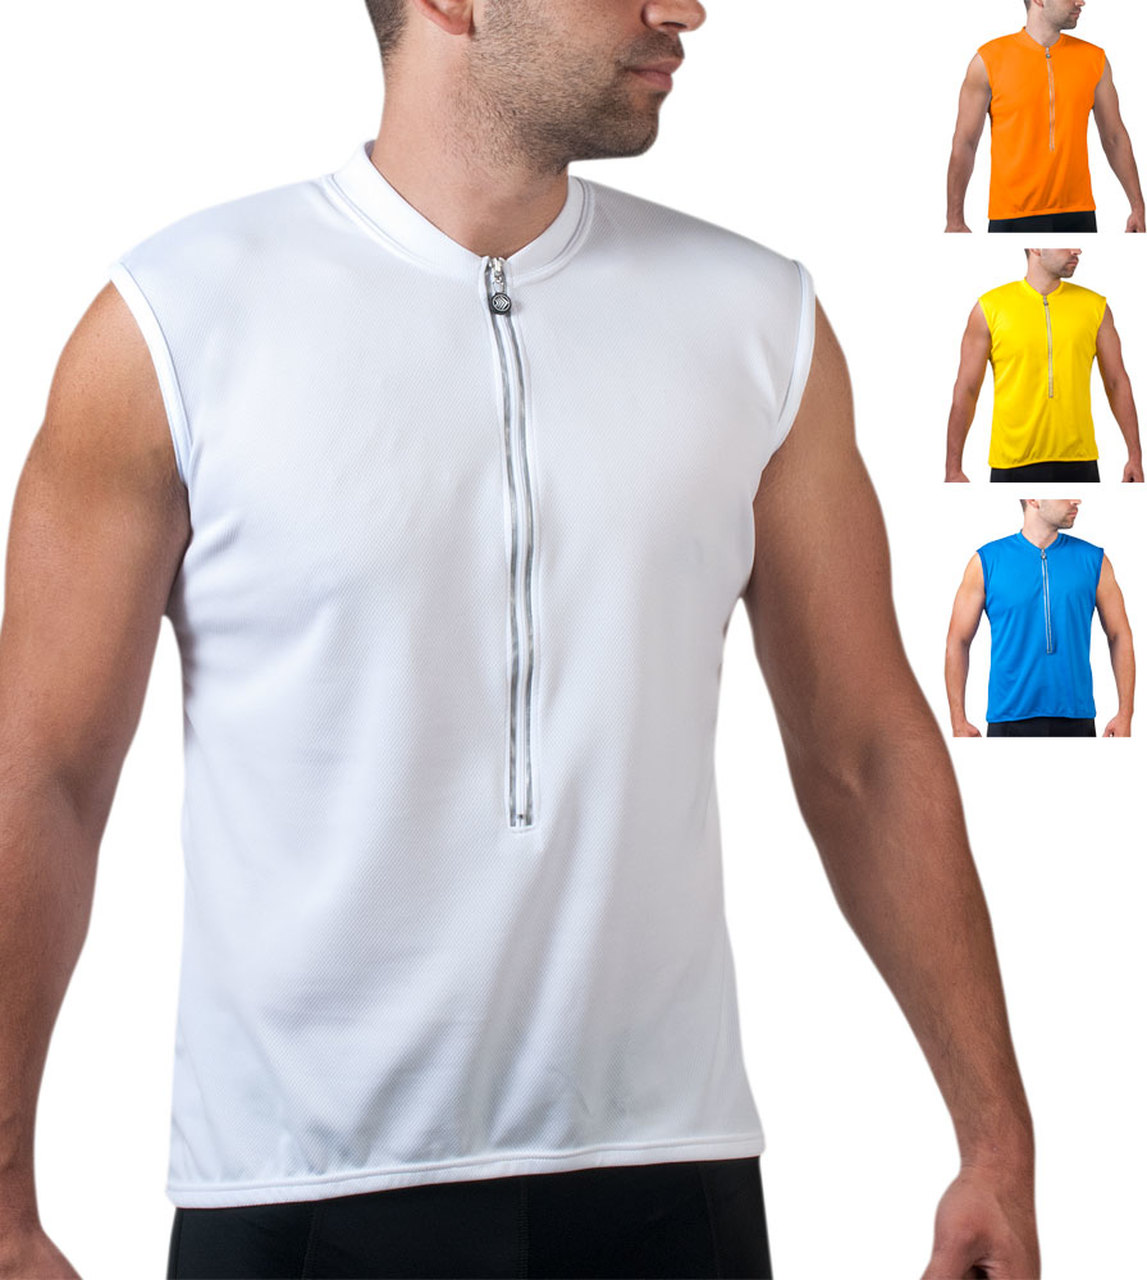 Big Man's Solid Color Sleeveless Jersey